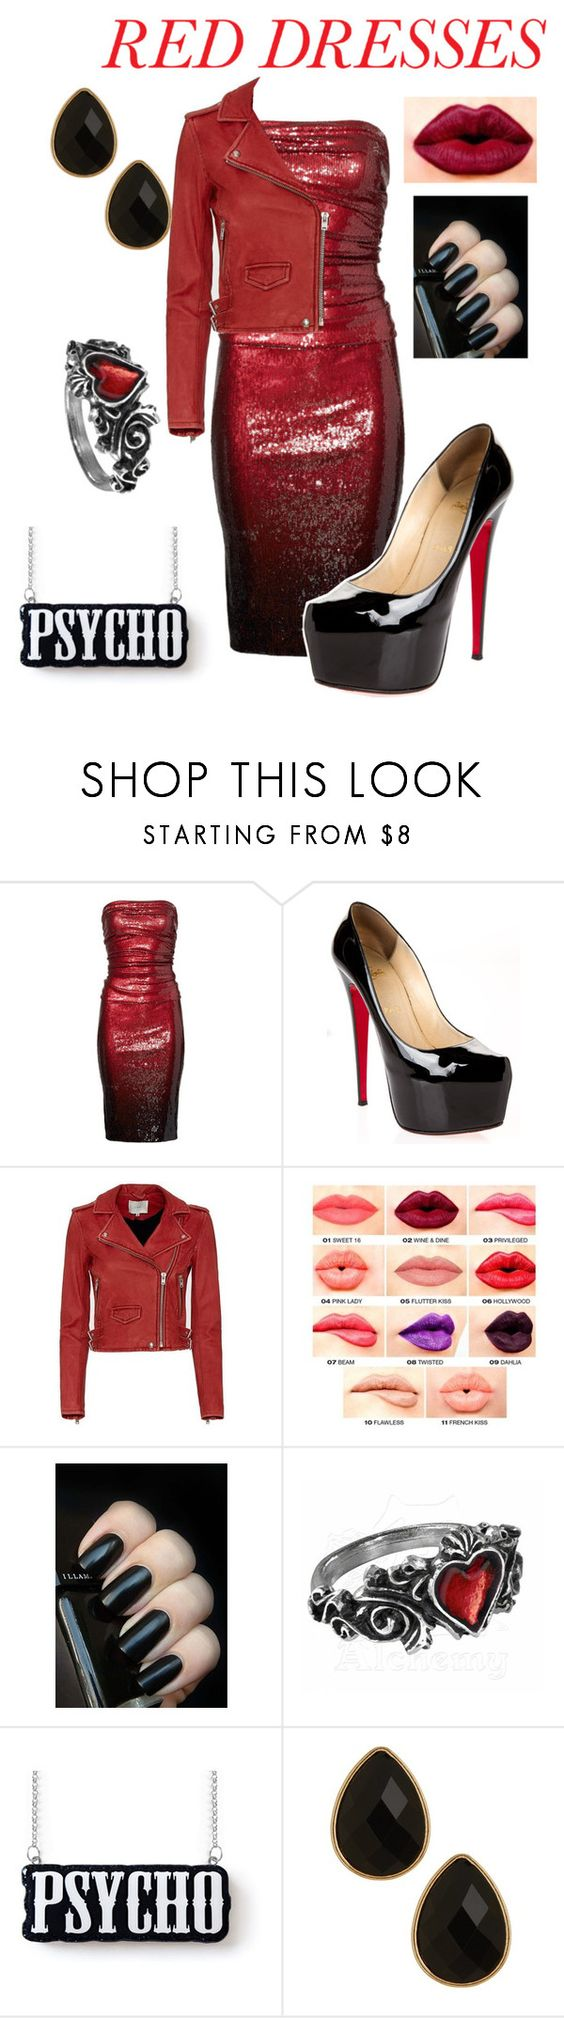 """Blood red"" by ravenclawcrown on Polyvore featuring Donna Karan, Christian Louboutin, IRO, NYX, Natasha Accessories, women's clothing, women, female, woman and misses"